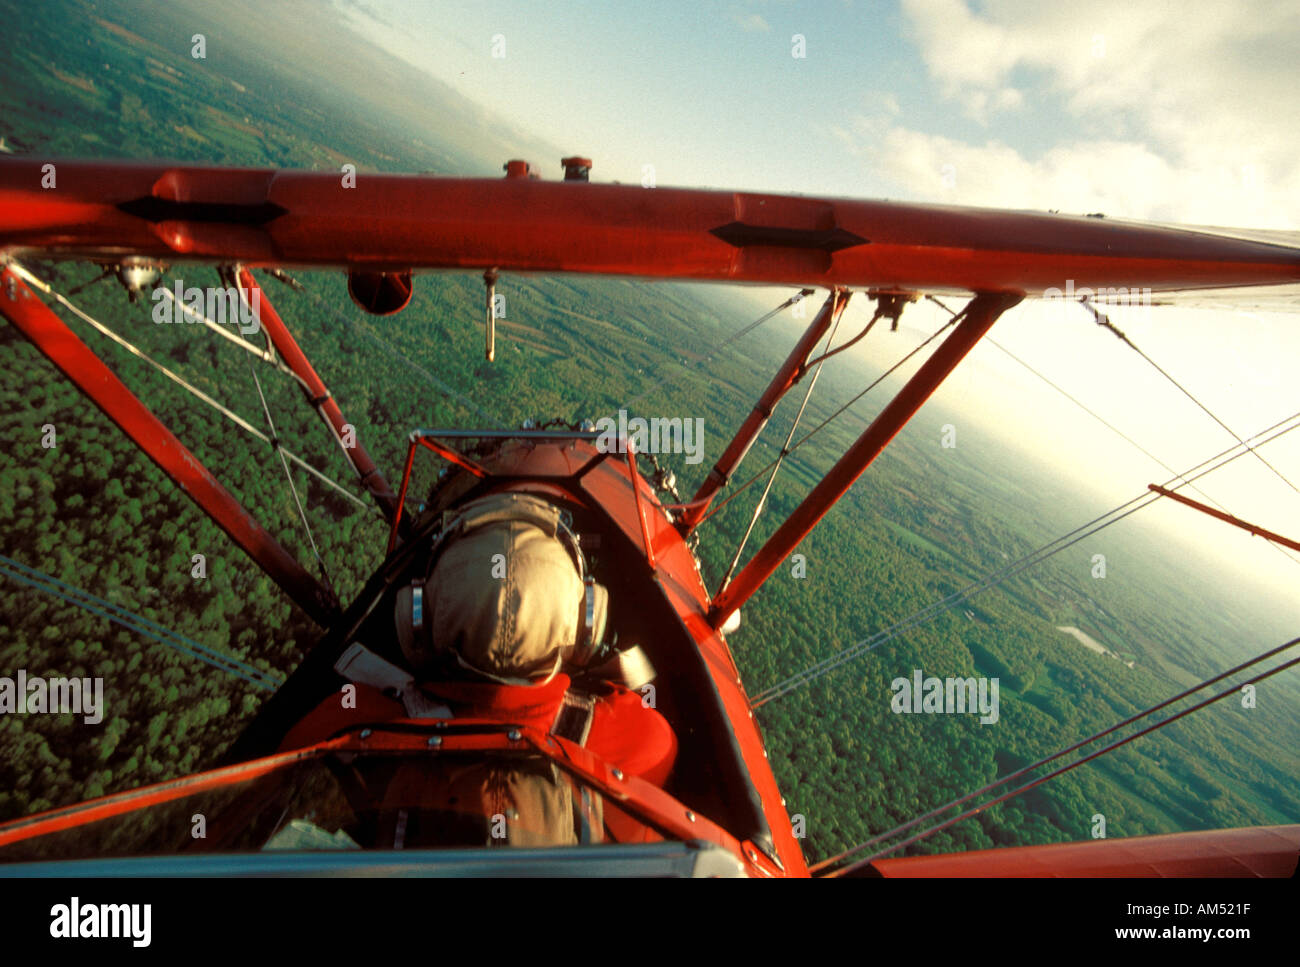 red open cockpit bi plane in a steep turn - Stock Image